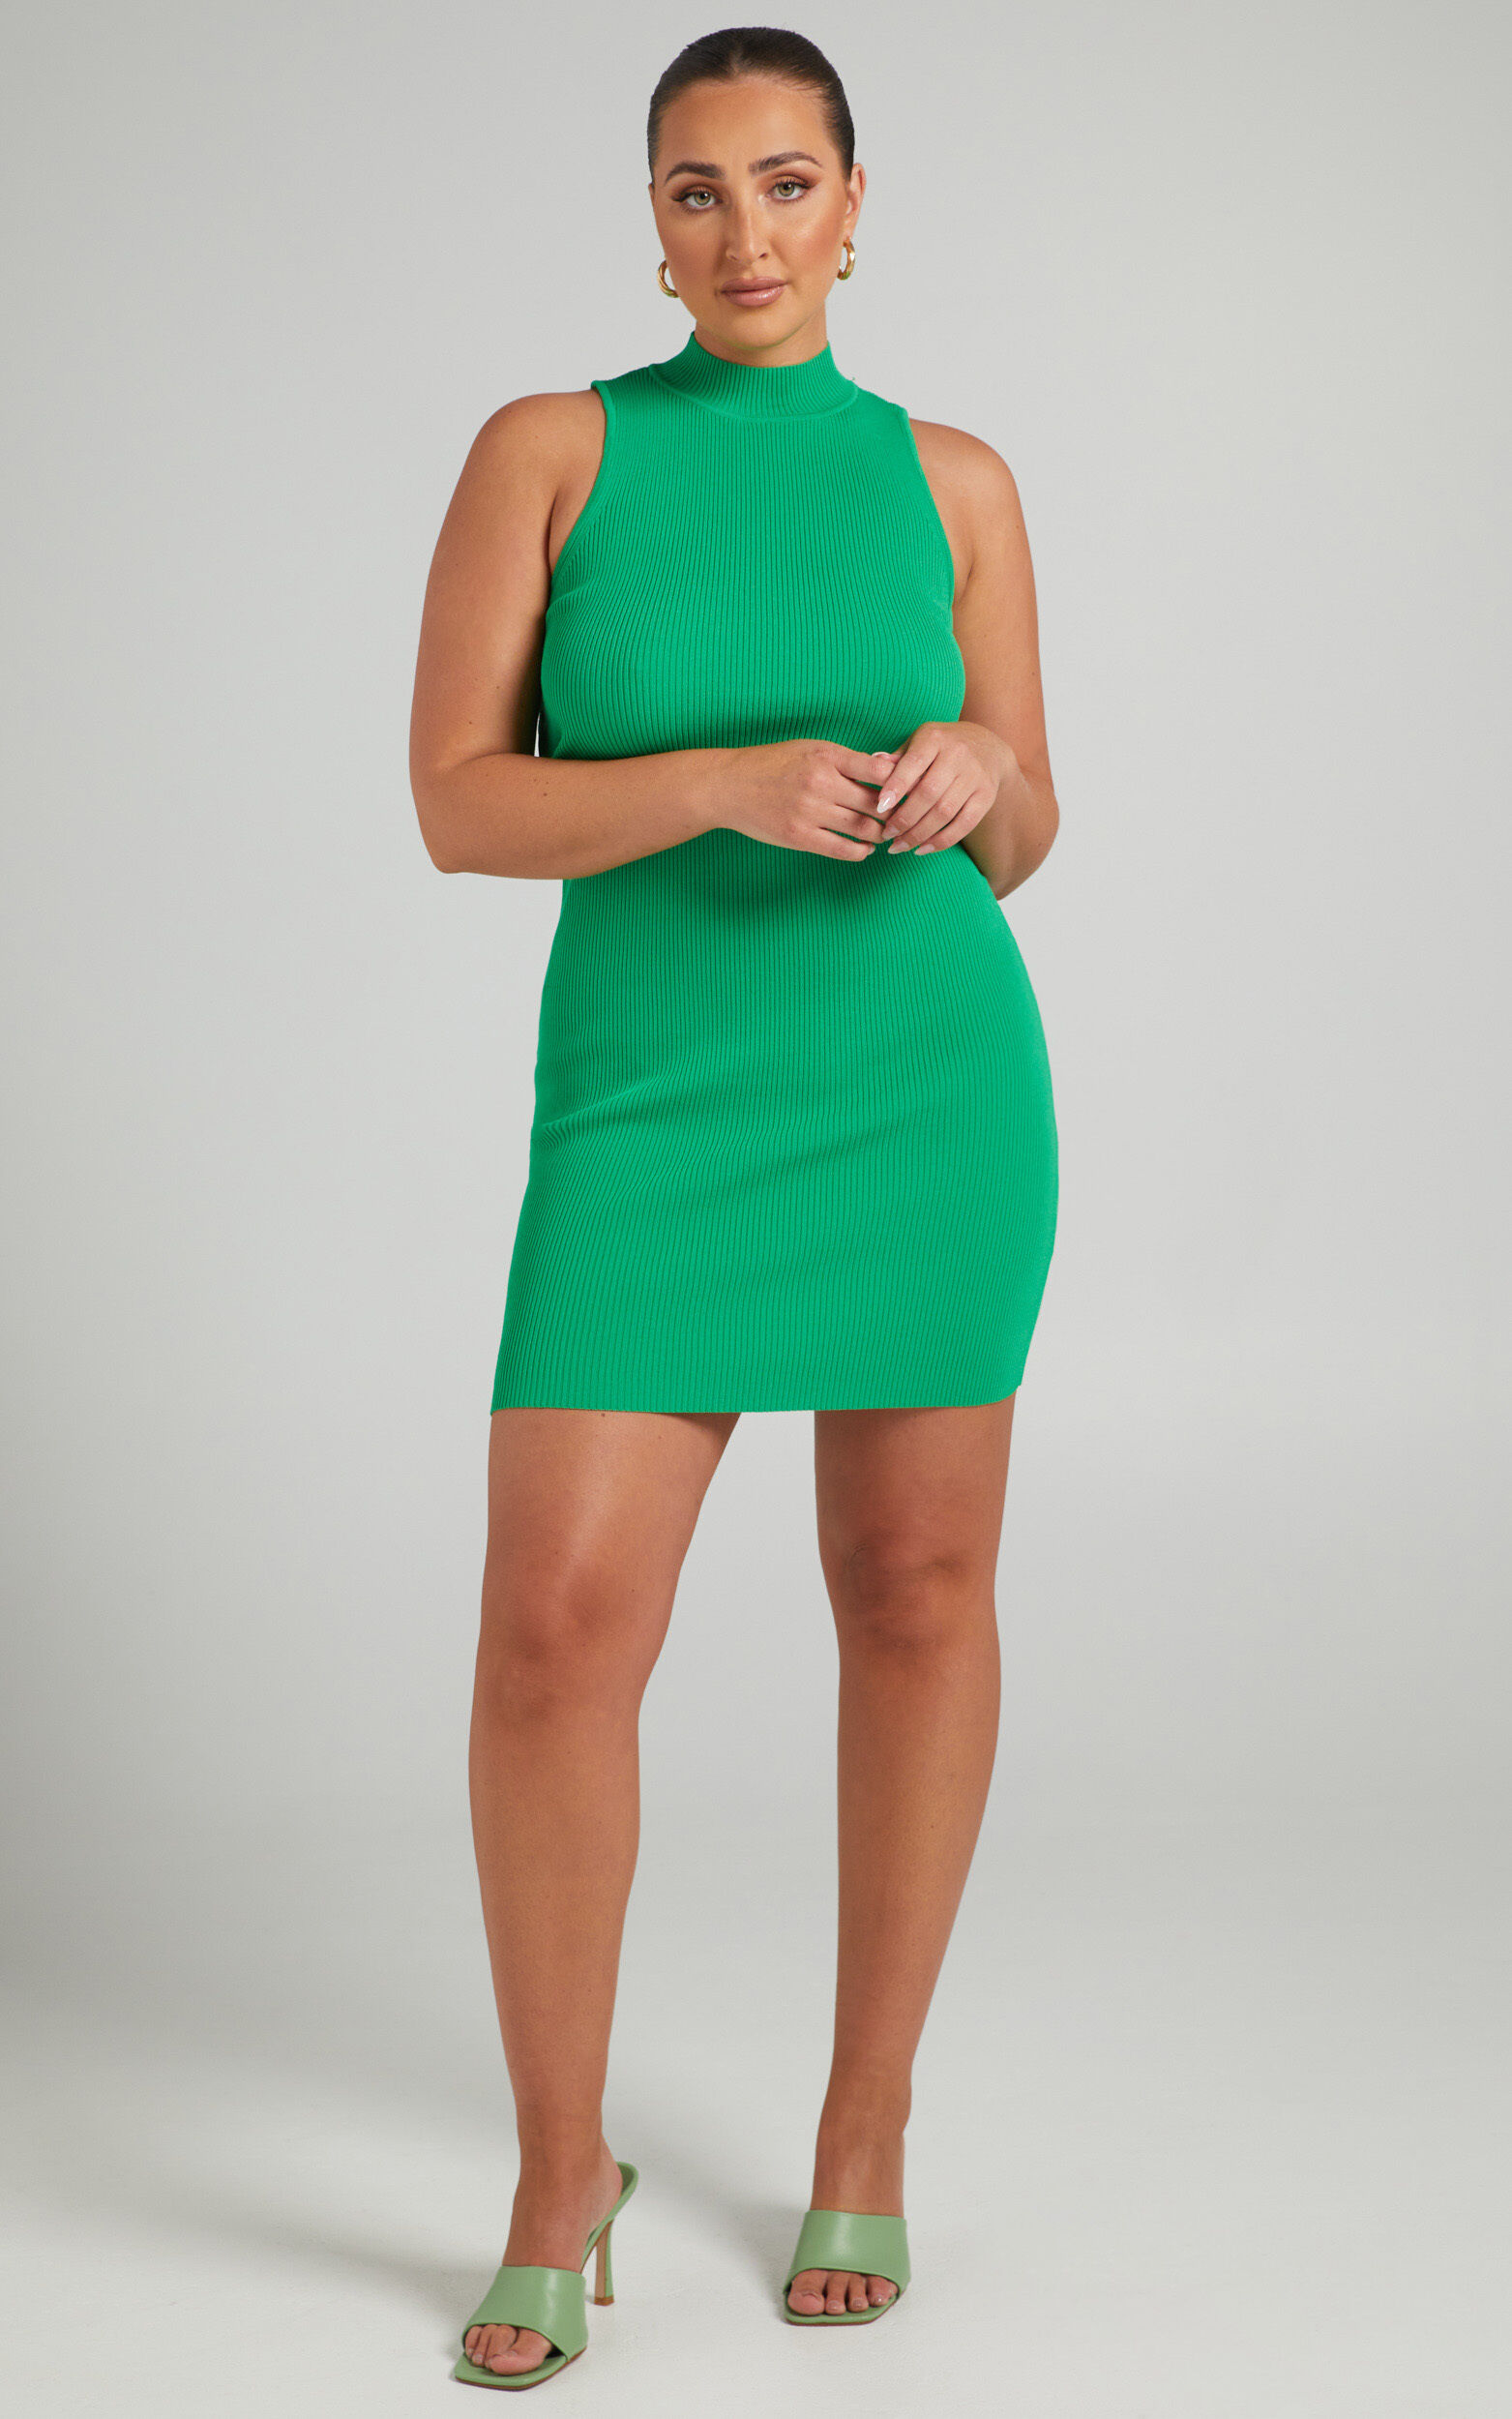 LIONESS - JADORE CHAIN MINI DRESS in Green - L, GRN1, super-hi-res image number null